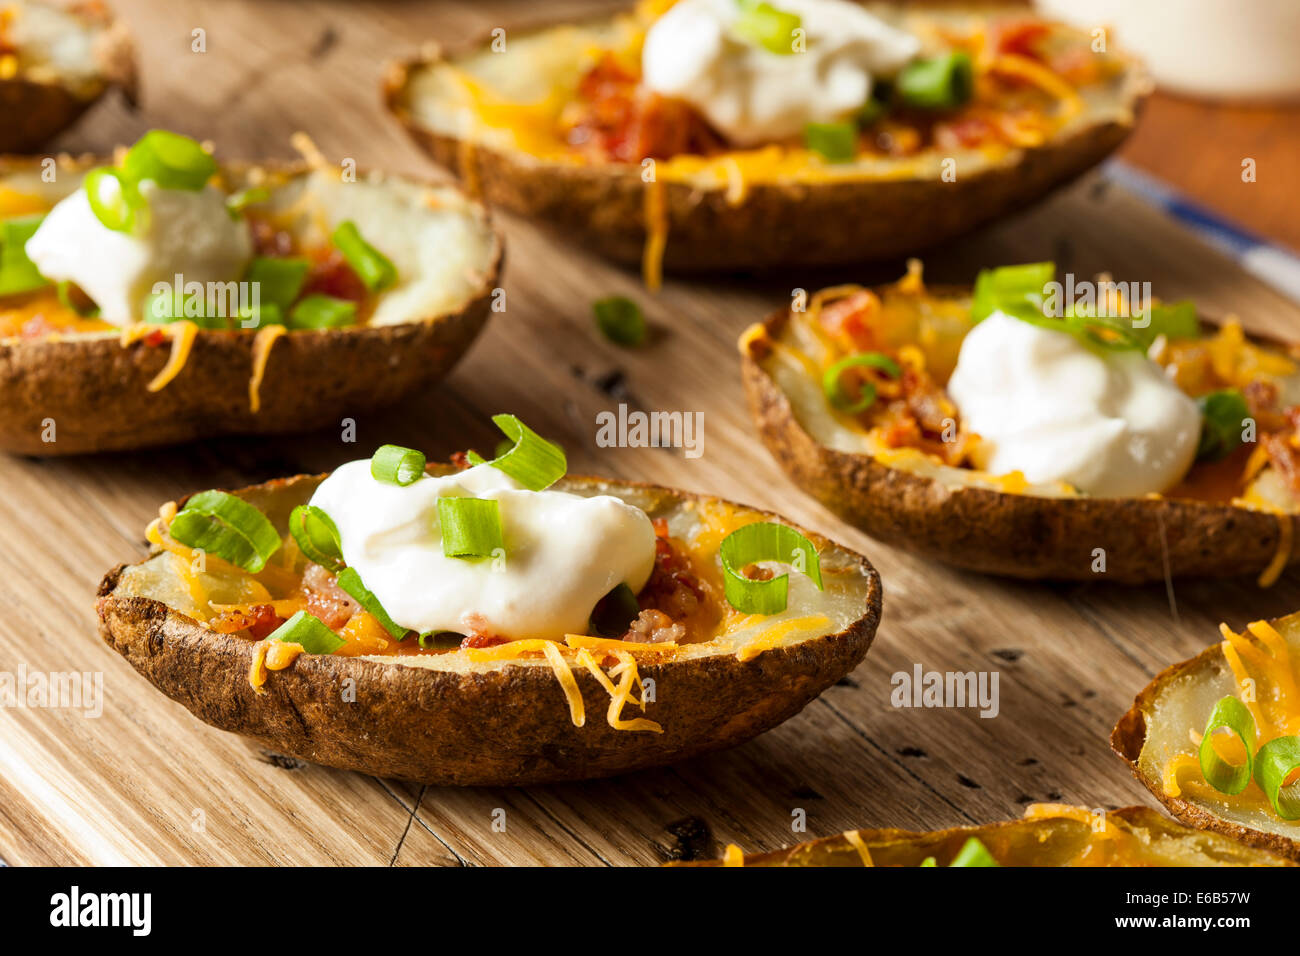 Homemade Potato Skins with Bacon Cheese and Sour Cream - Stock Image